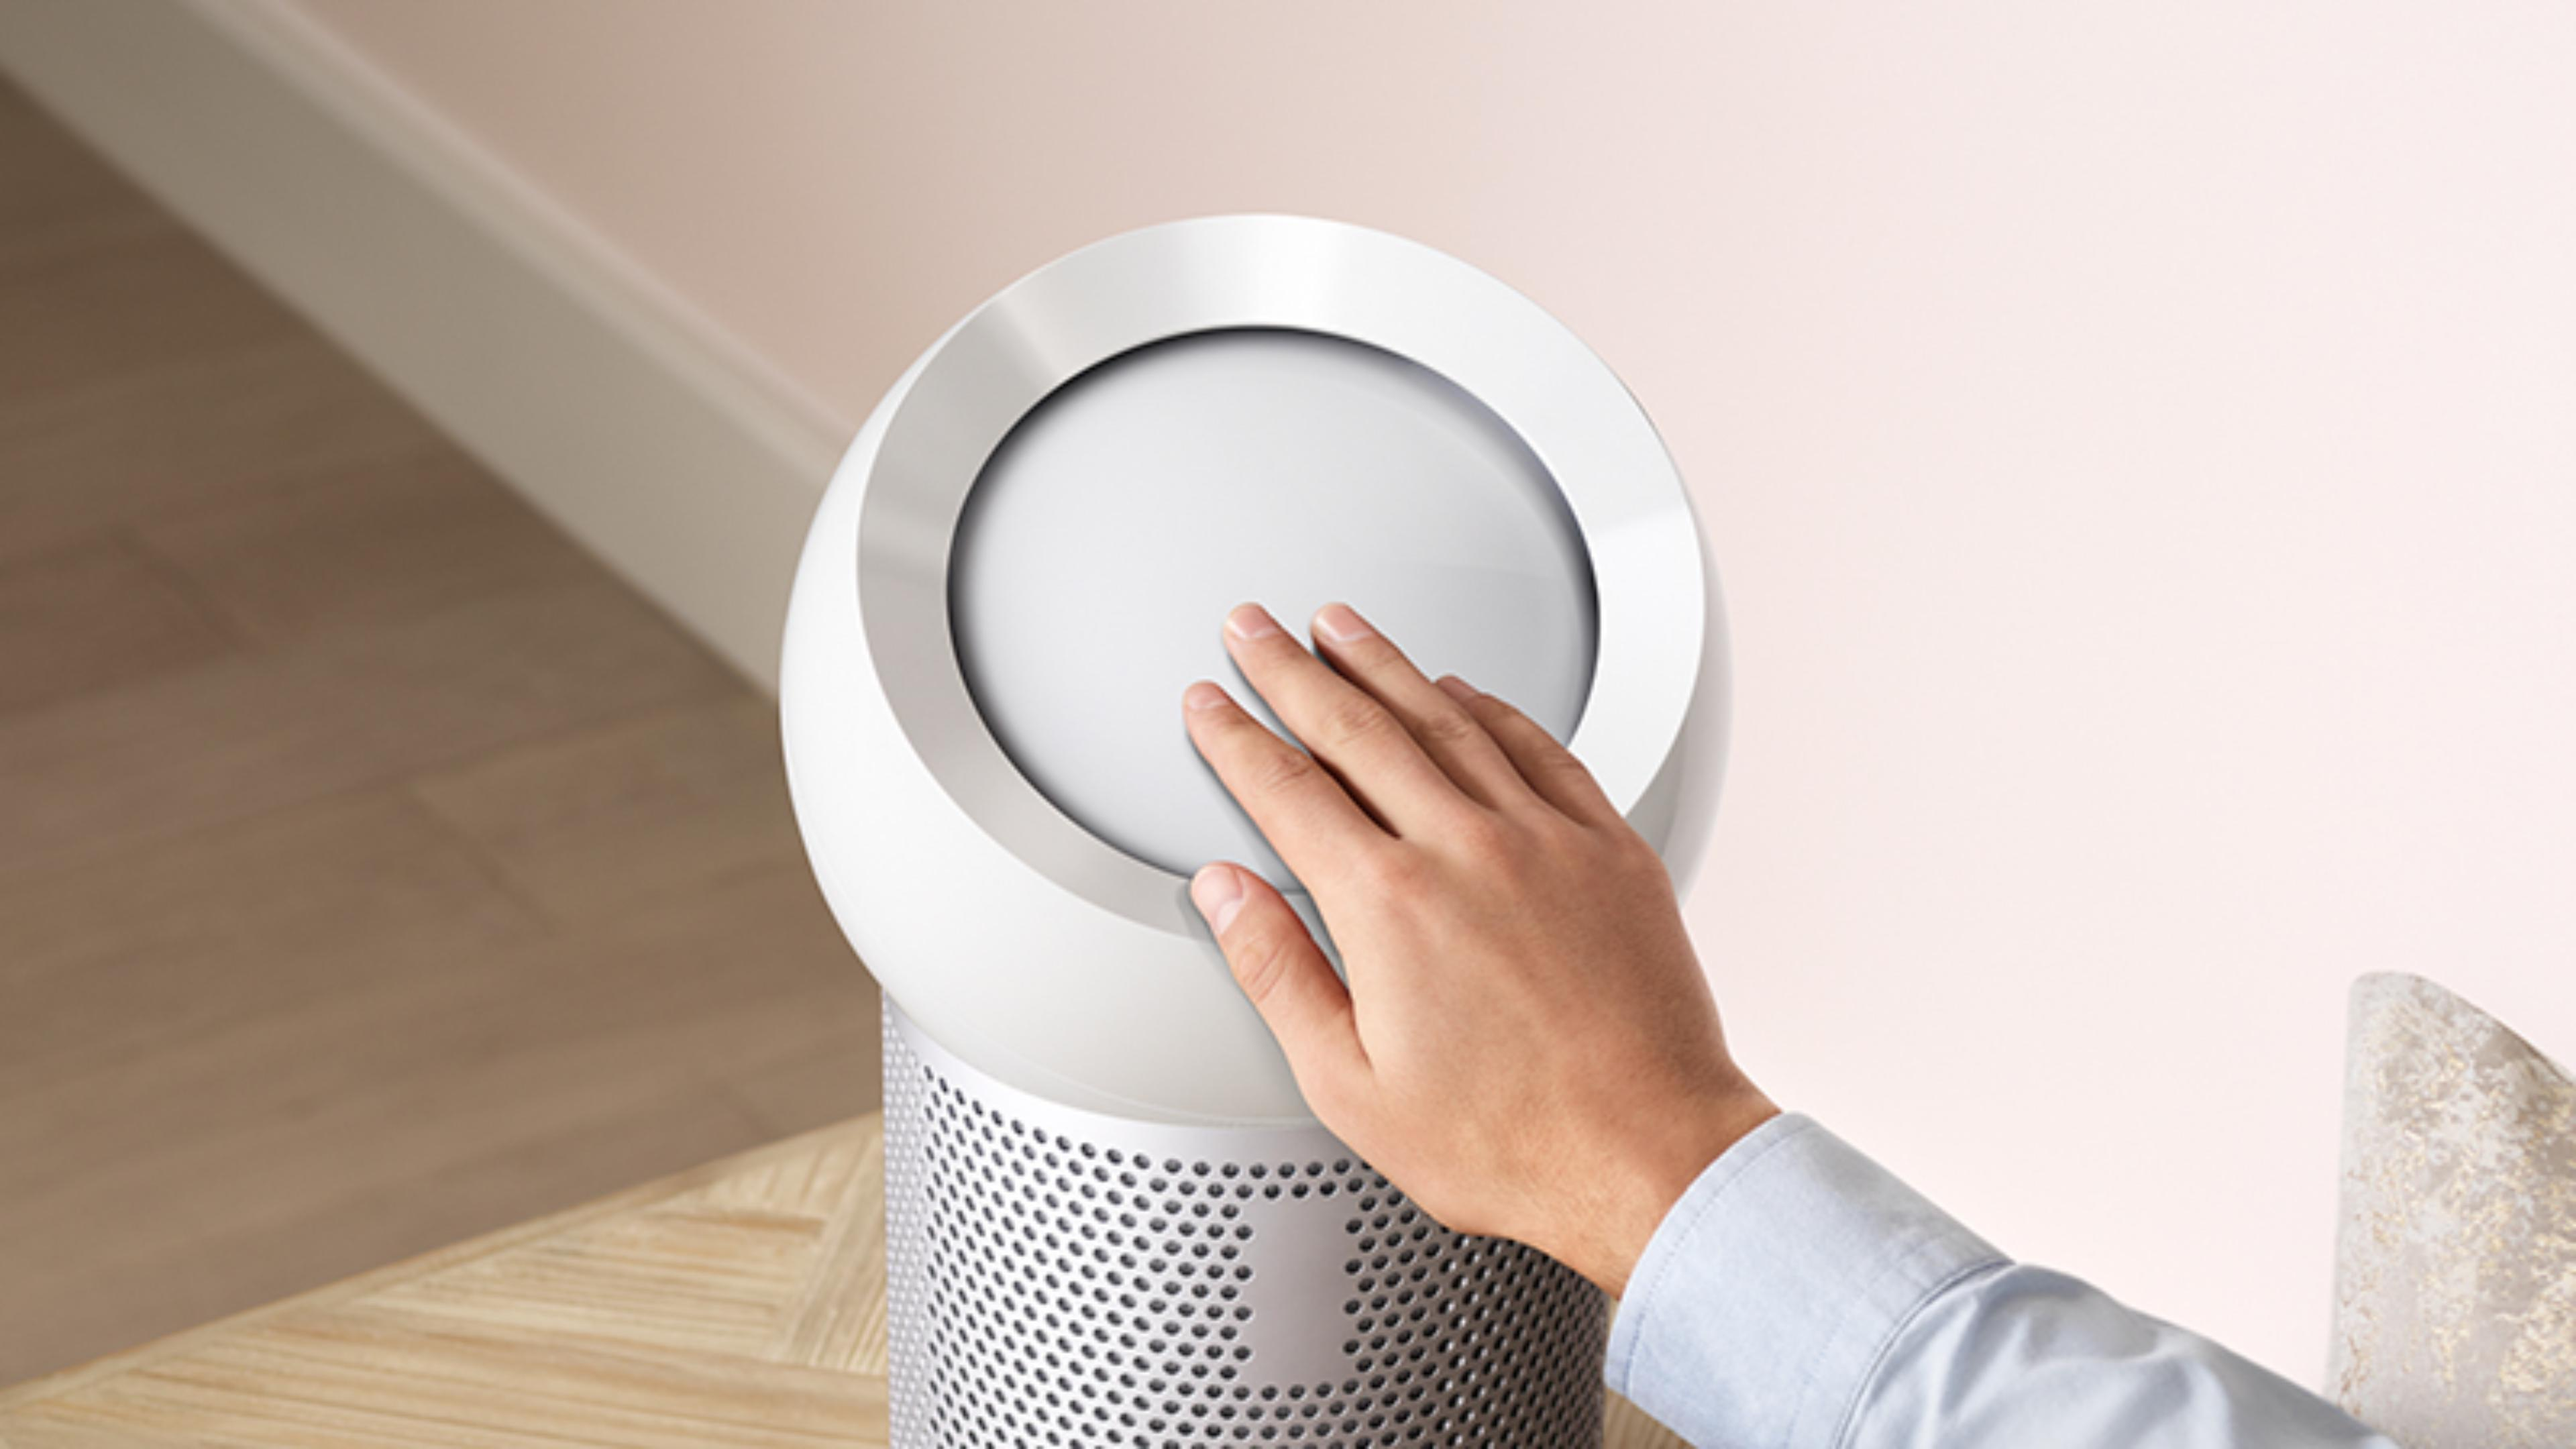 Hand reaching out to refocus airflow with Dyson Core Flow technology